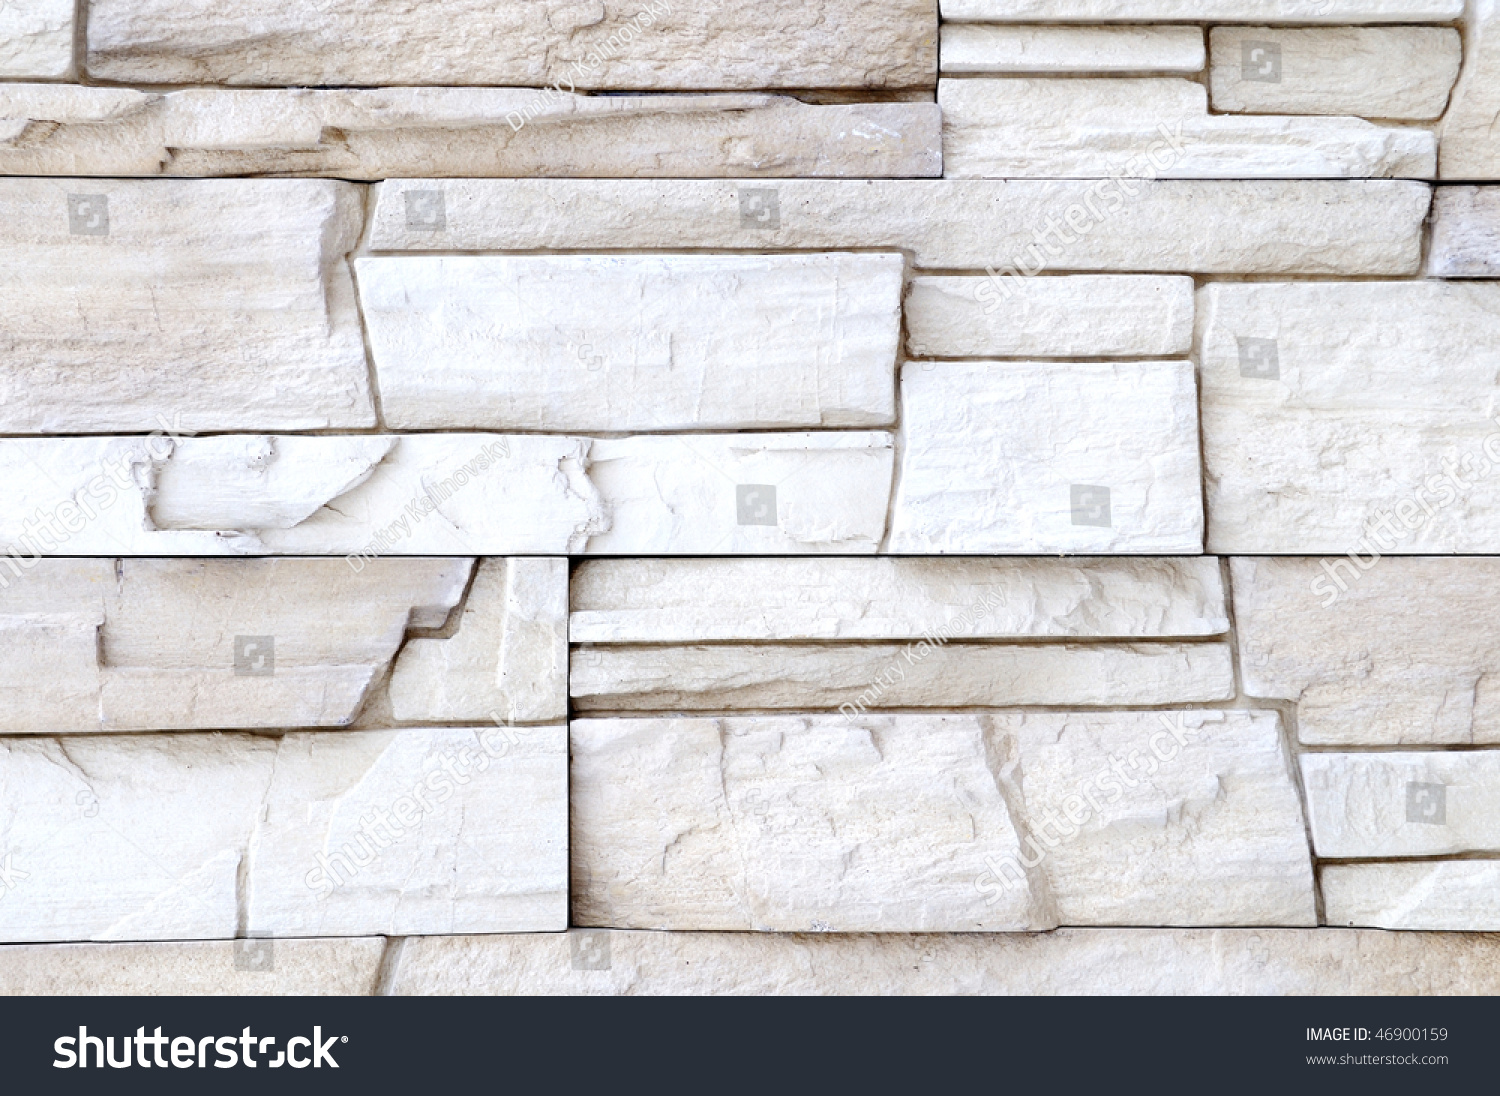 White brick stone exterior and interior decoration building material for wall  finishingWhite Brick Stone Exterior Interior Decoration Stock Photo  . Exterior Wall Finishing Materials. Home Design Ideas